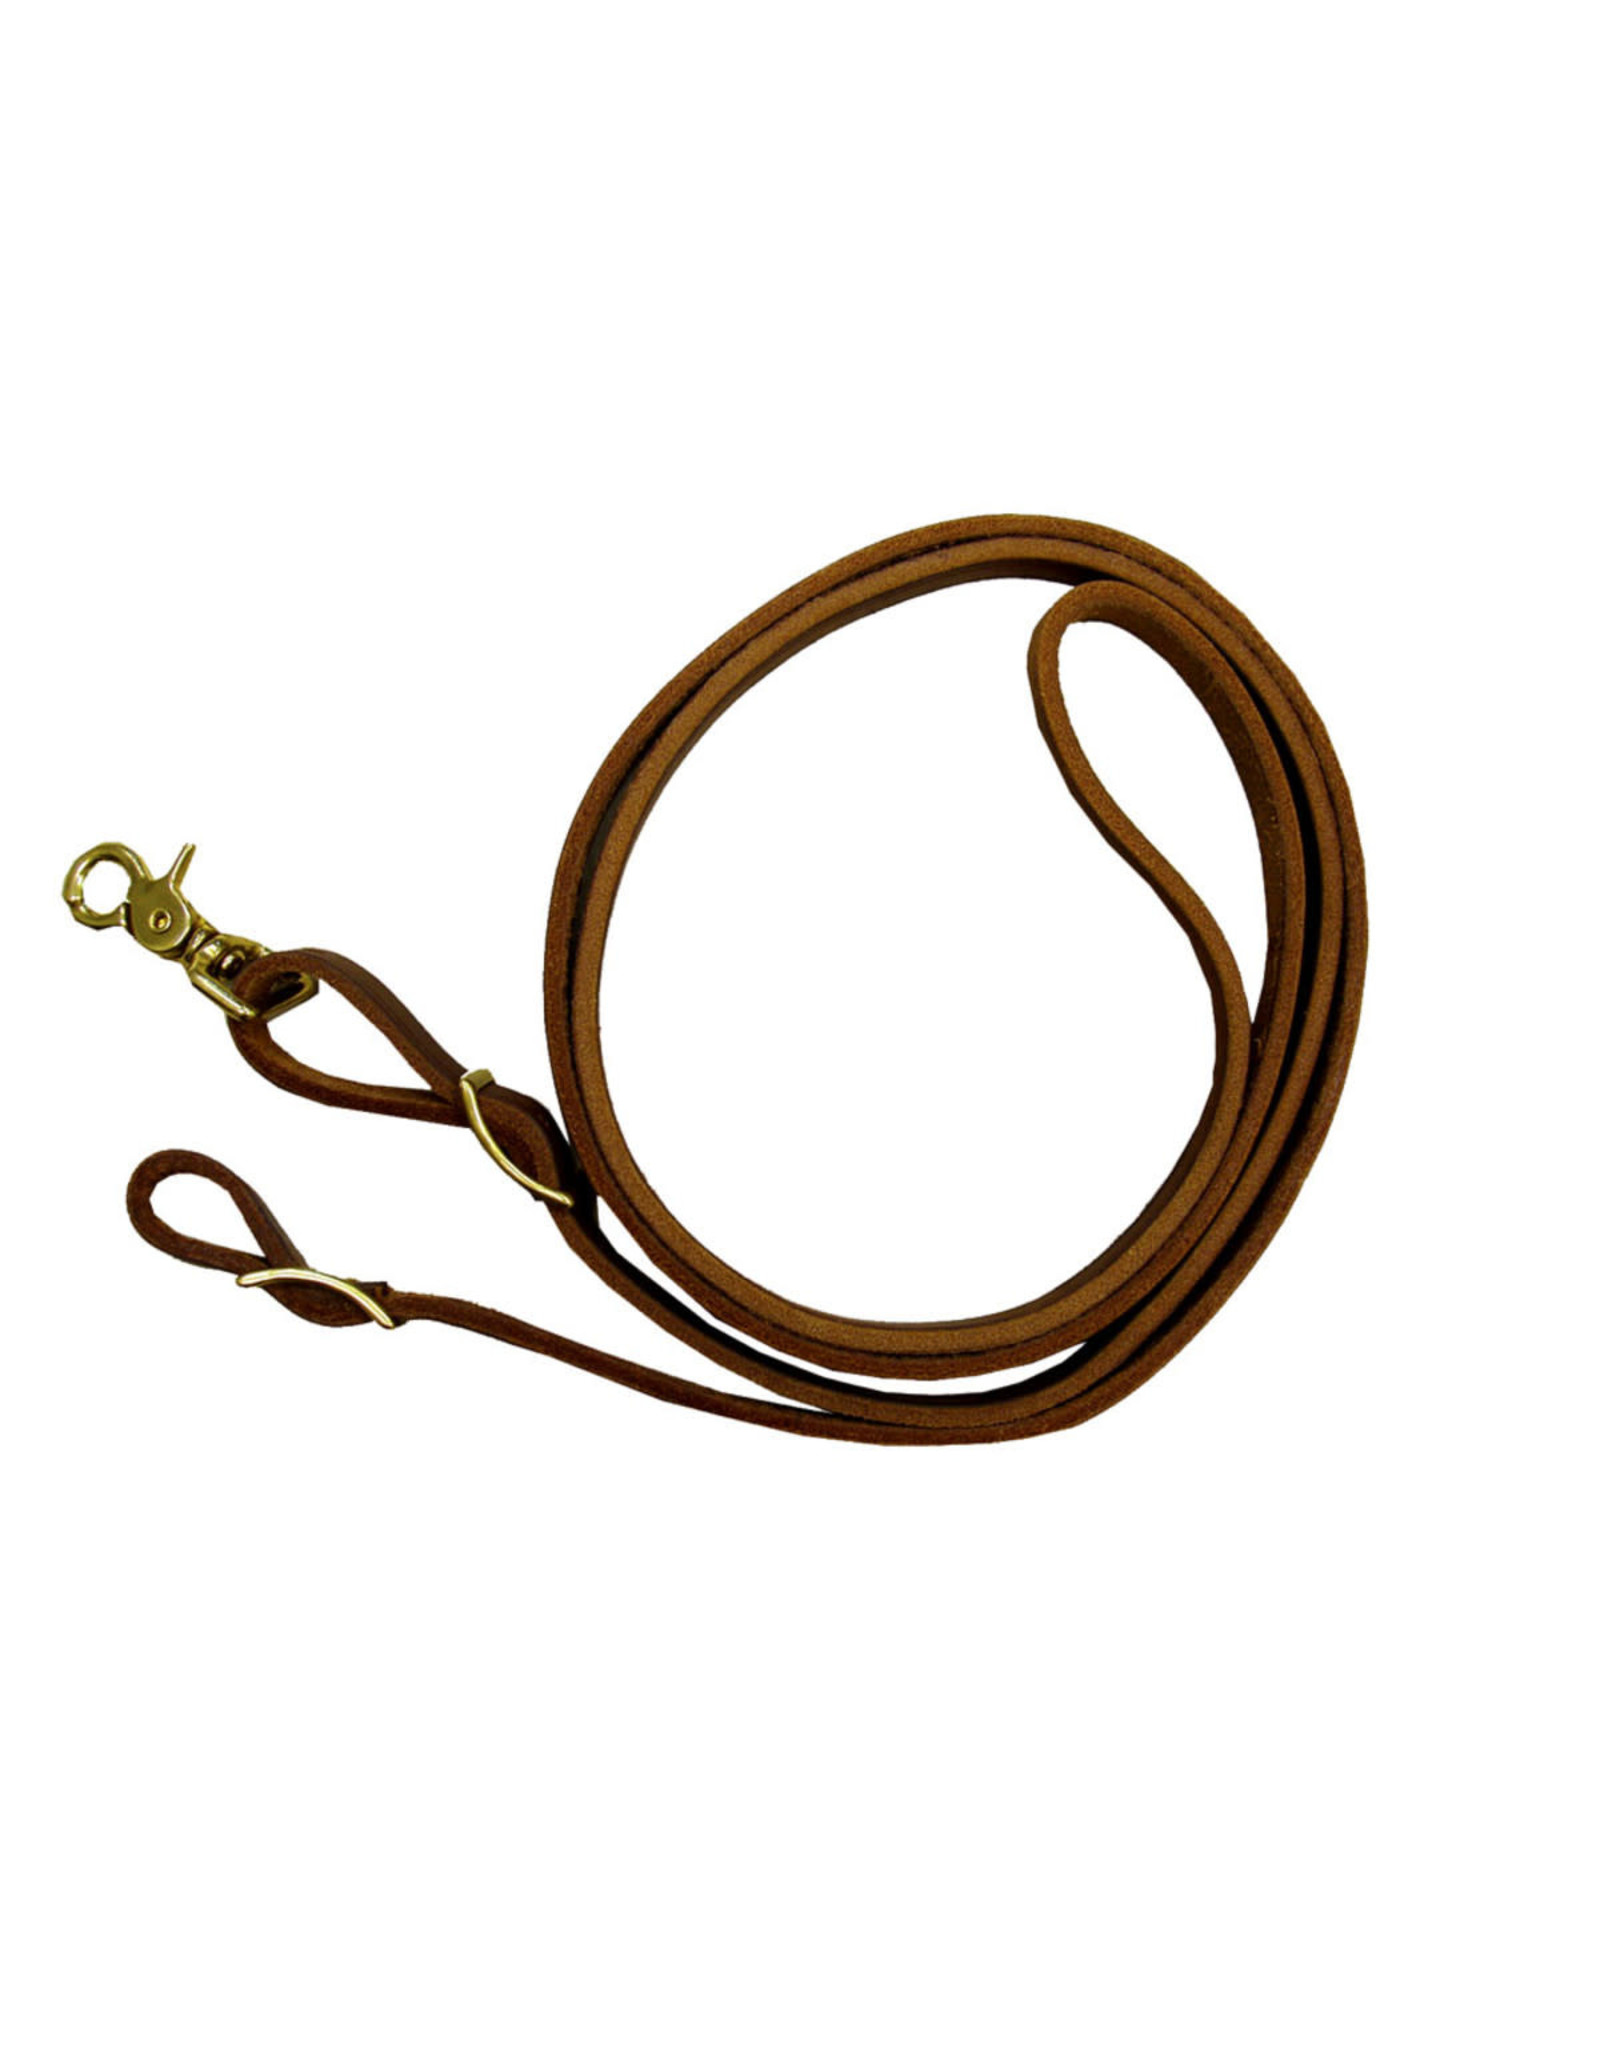 Reins, Roping INT Leather 8' Med Brown Brass